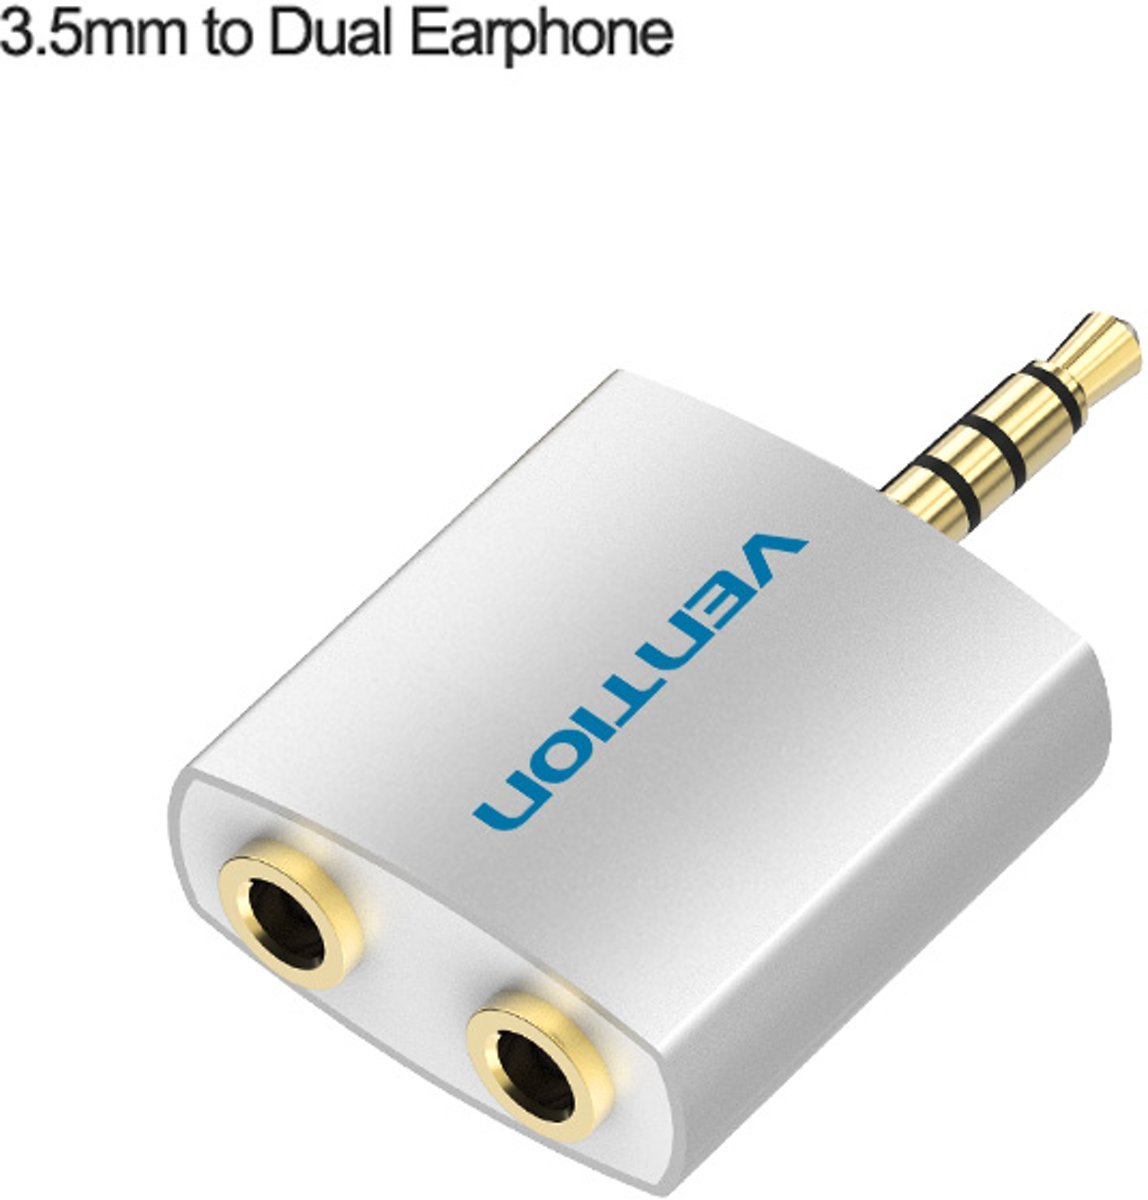 Vention dual audio adapter